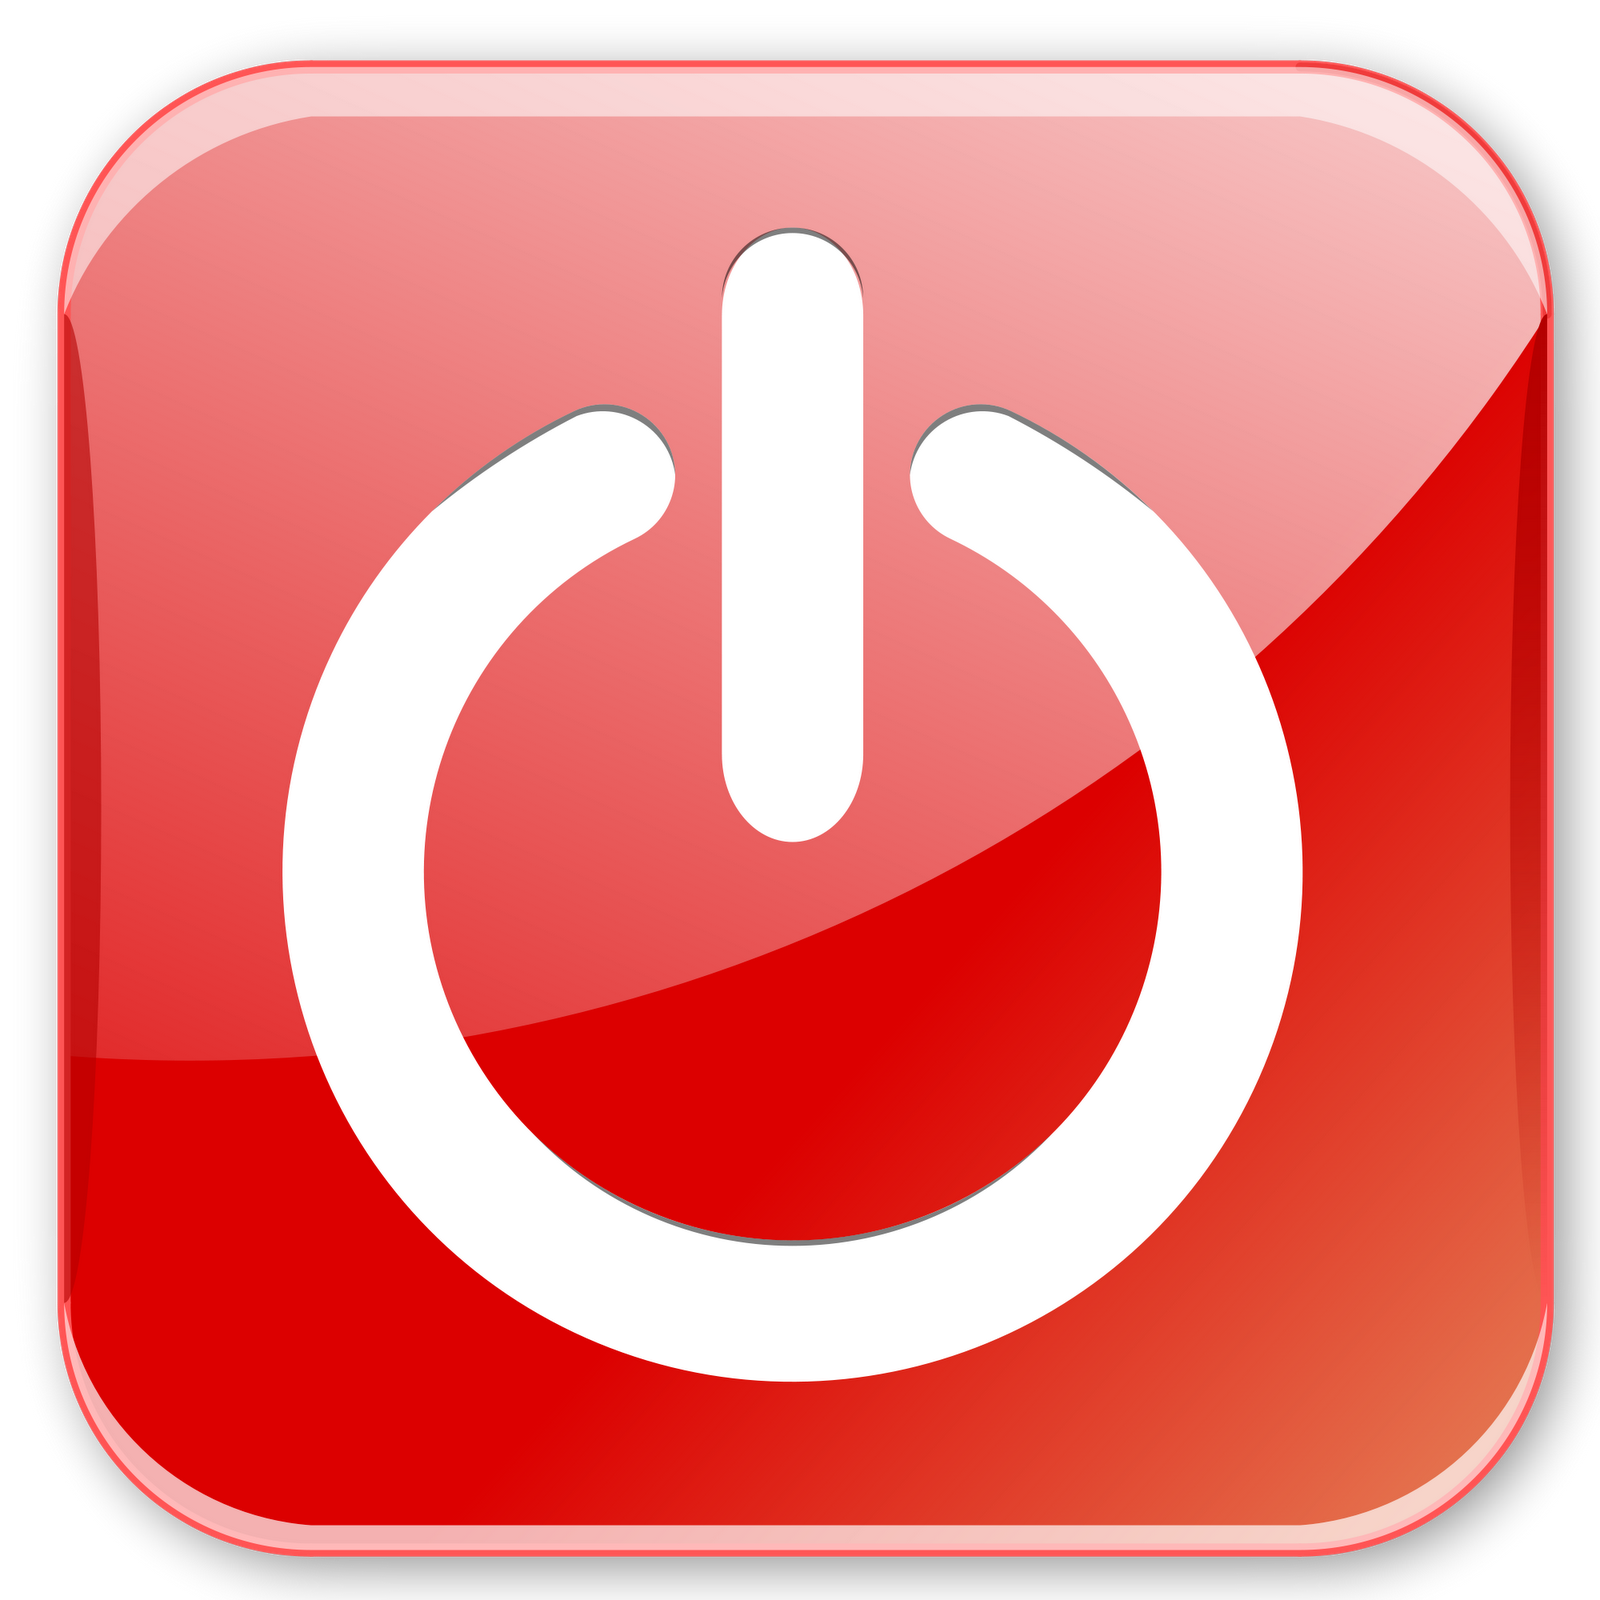 battery icon ios 6 dBEr62h